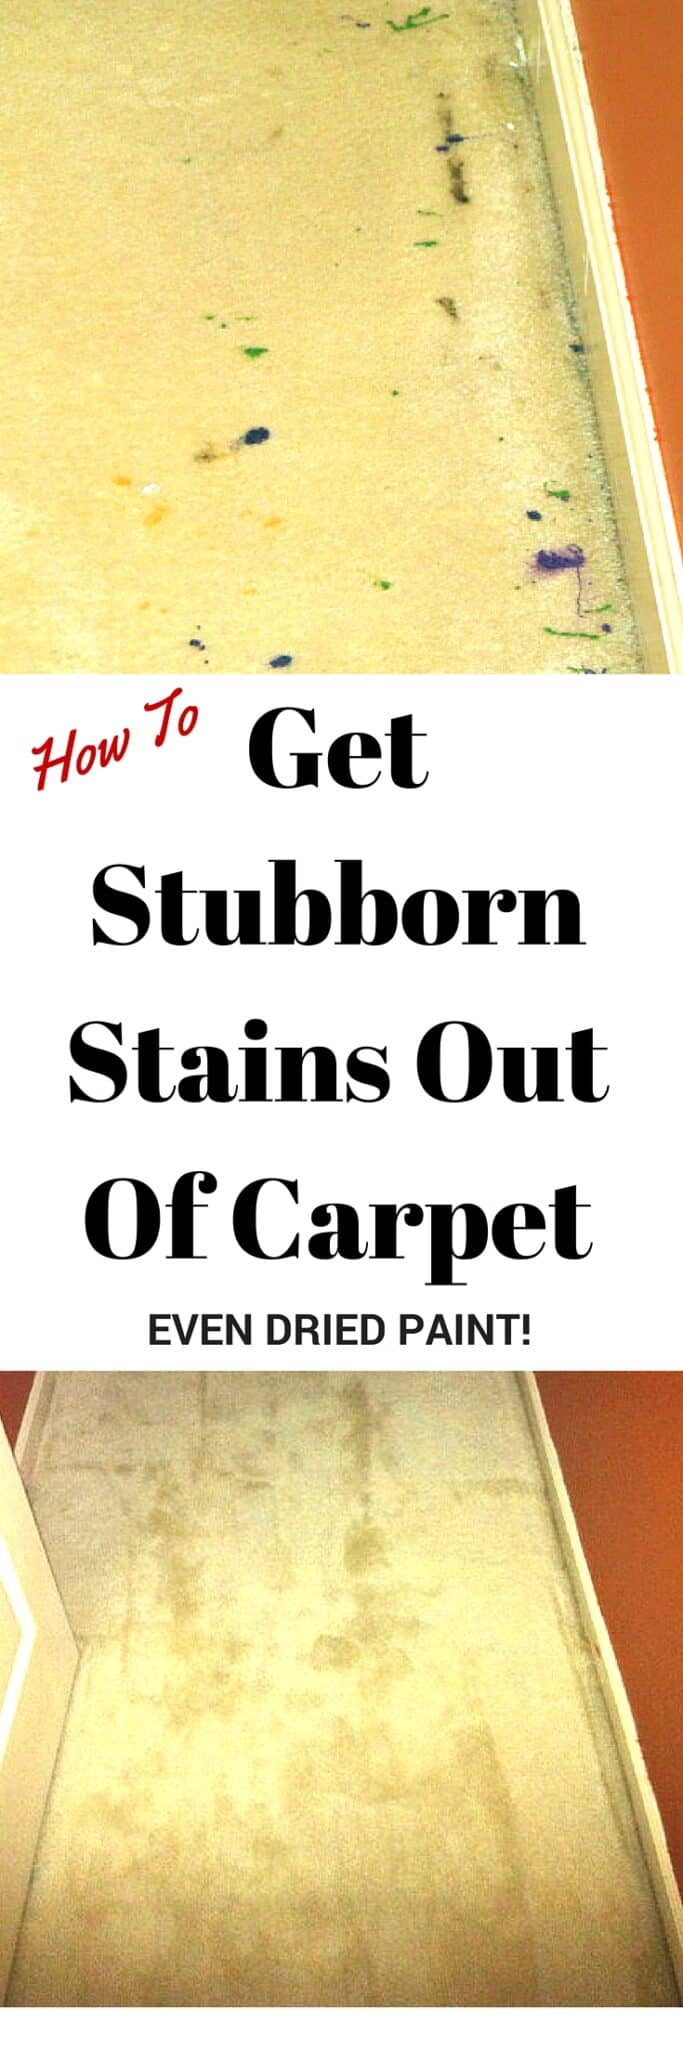 How To Remove Old Coffee Stains From Carpet - The Best ...